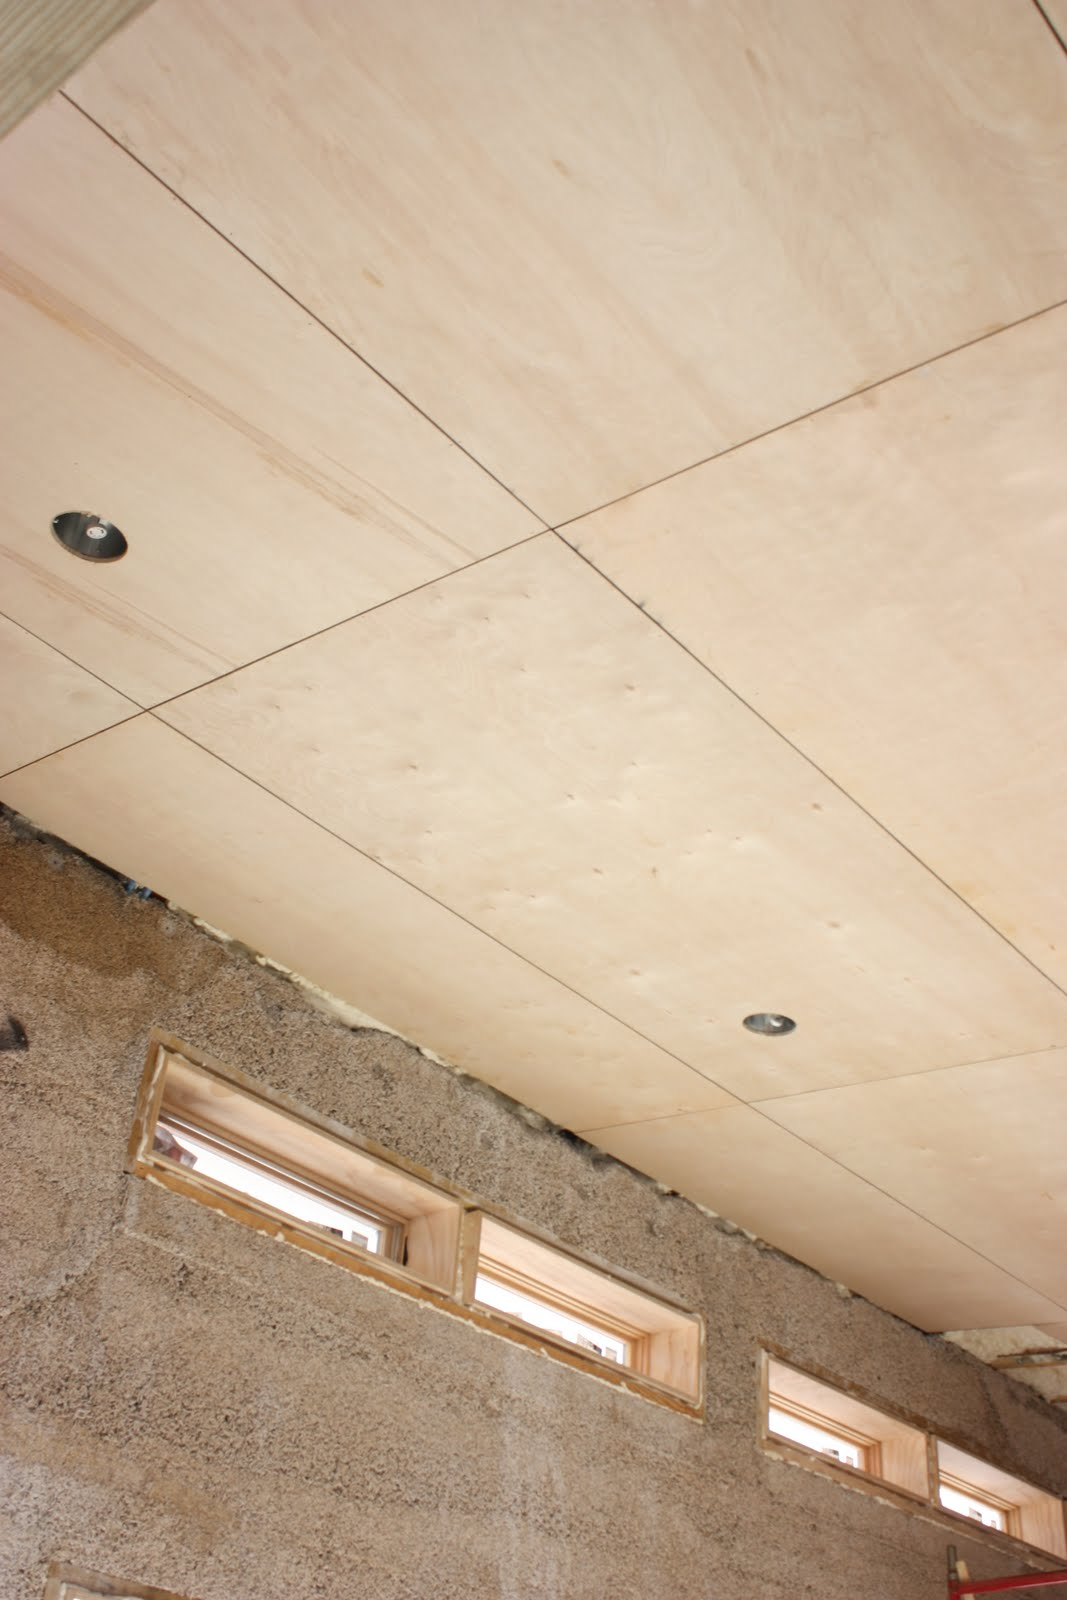 garage ceiling insulation ideas - The Push House Plywood Ceiling looks amazing